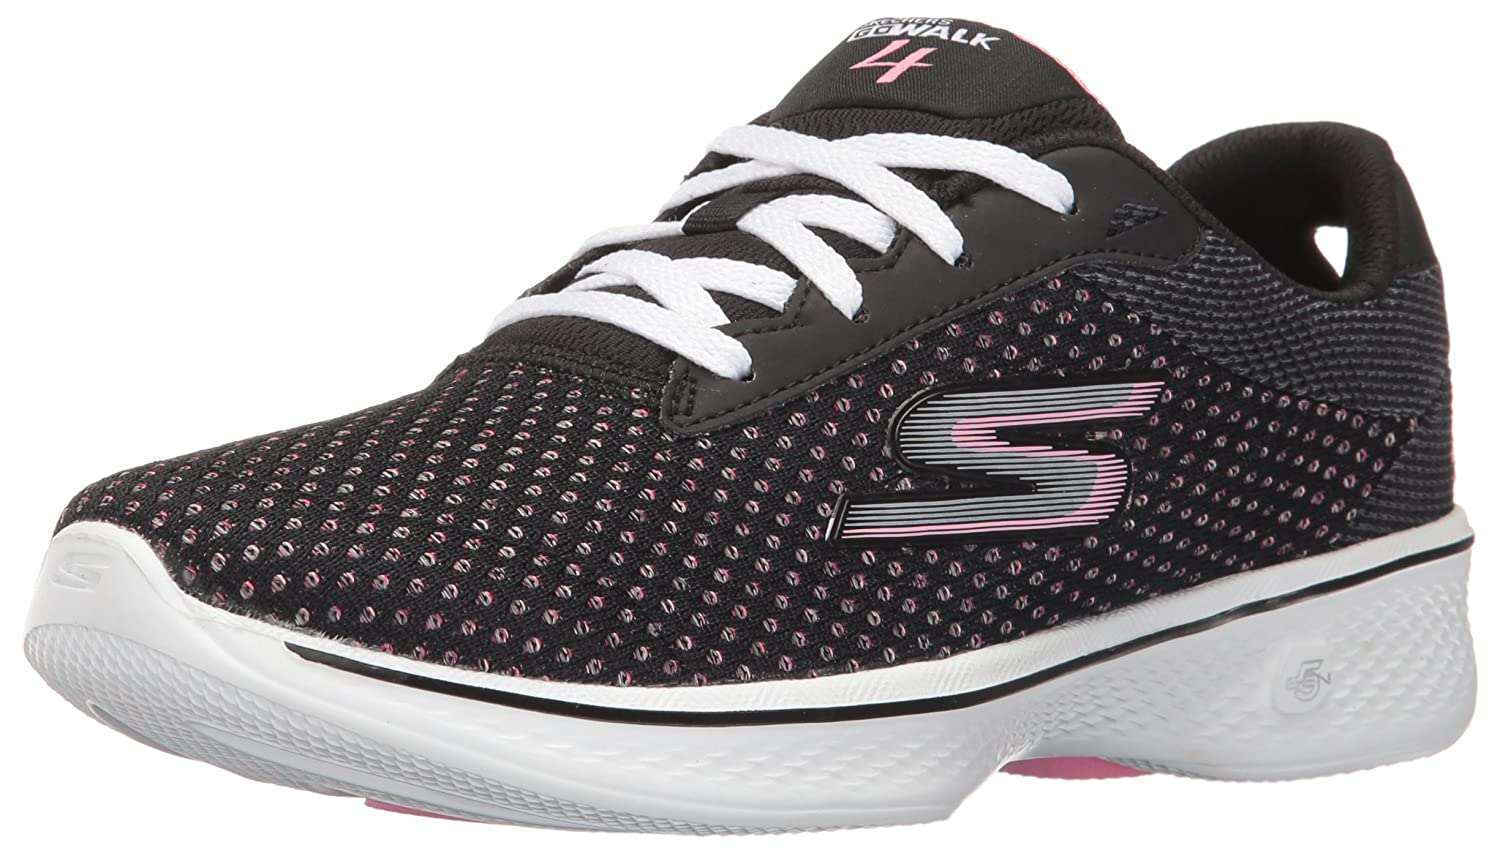 Skechers Performance Women's Go Walk 4 Exceed Walking Shoe 14146